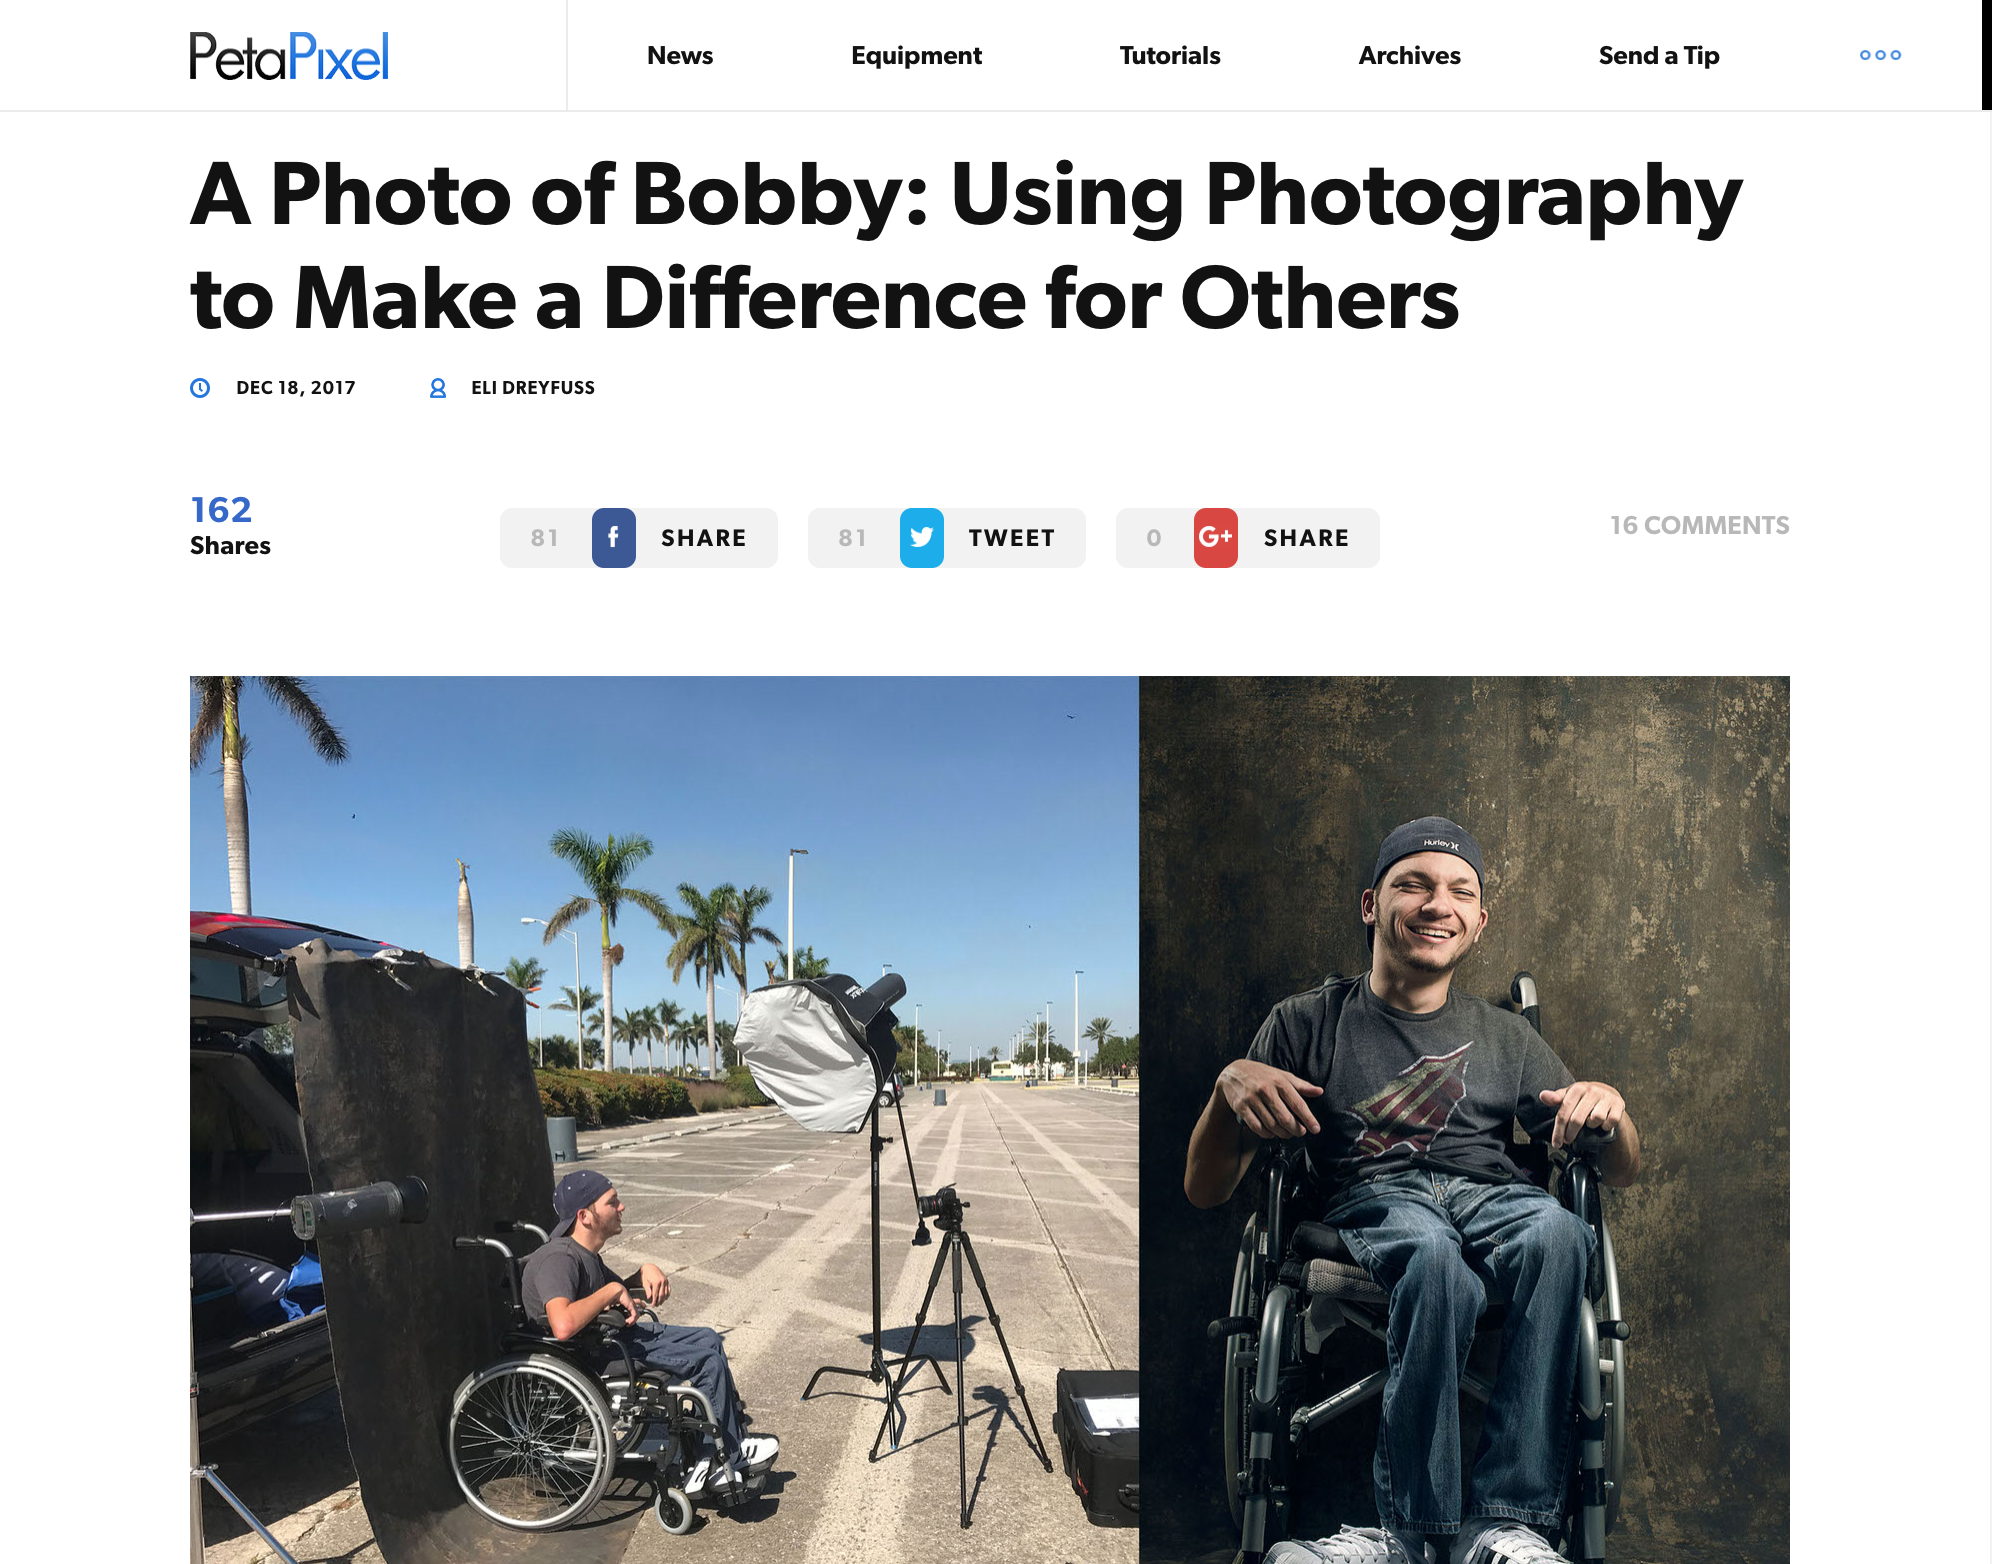 Using Photography to Make a Difference-PetaPixel Article- December 2017